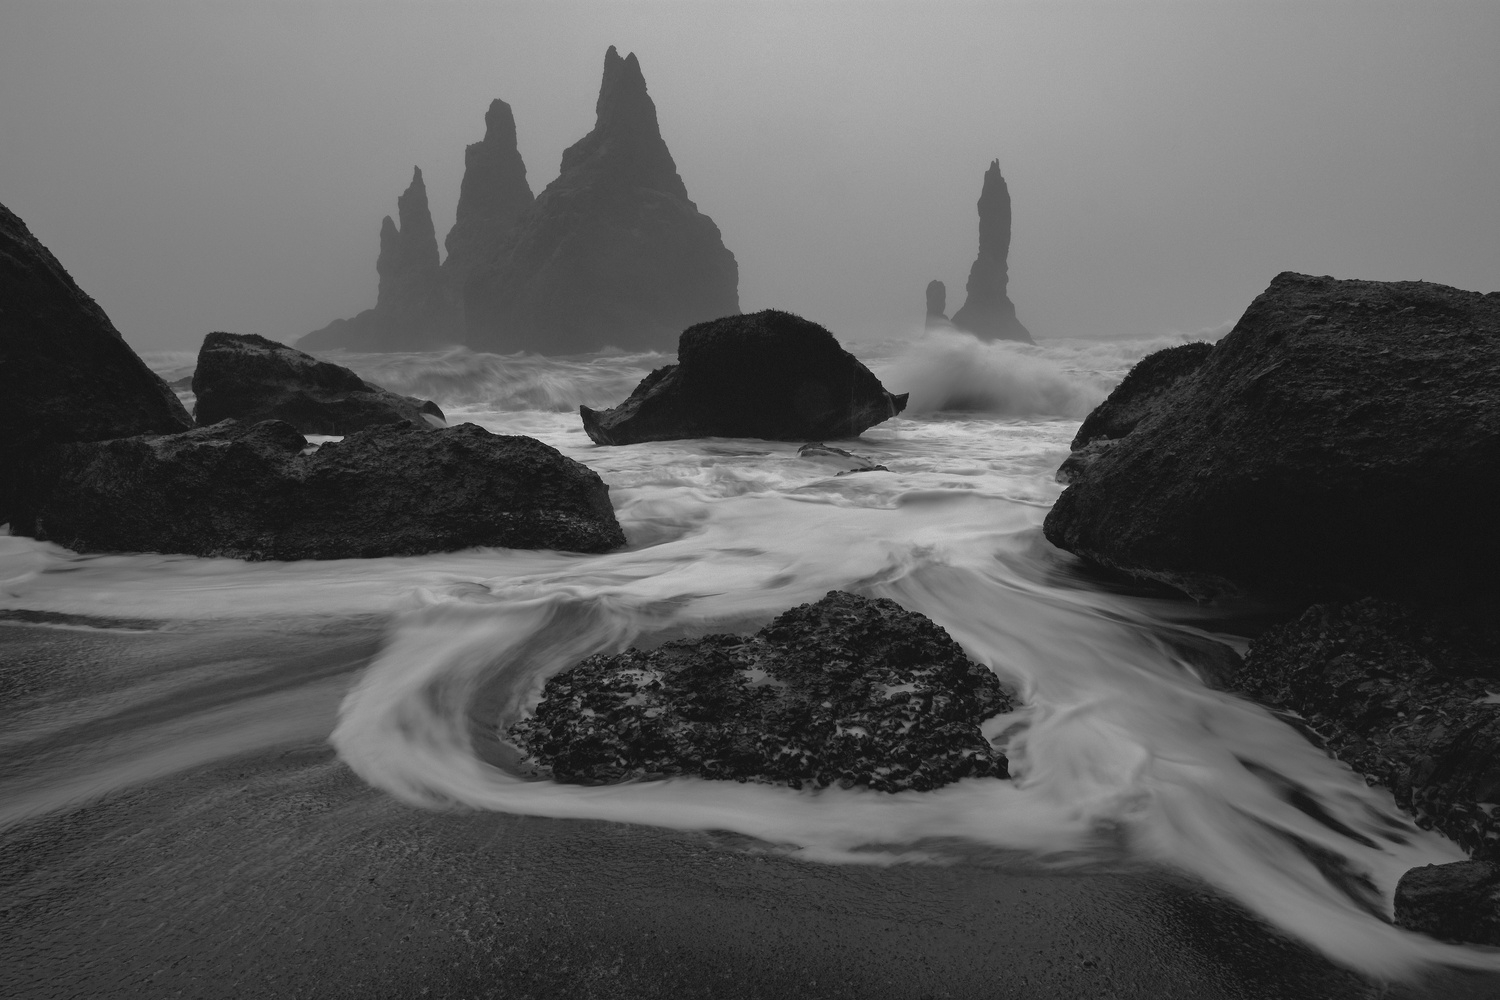 Weathering the Storm by Brett BARCLAY